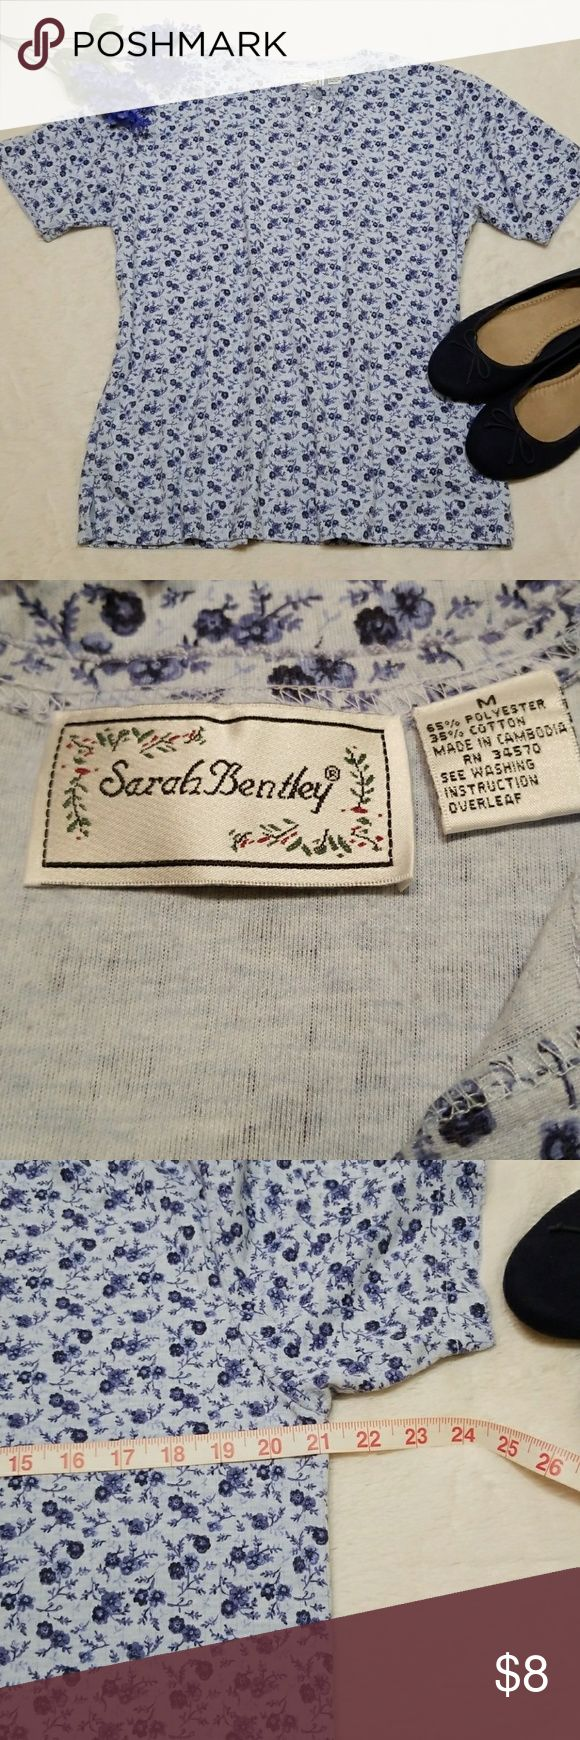 Sarah Bentley top / tee size medium Cute and classic top  By Sarah Bentley.    Size medium.  Excellent pre love condition. Measurements in pictures. Feel free to ask questions. (Accessories not included) blue flats for sale in another listing. Sarah Bentley Tops